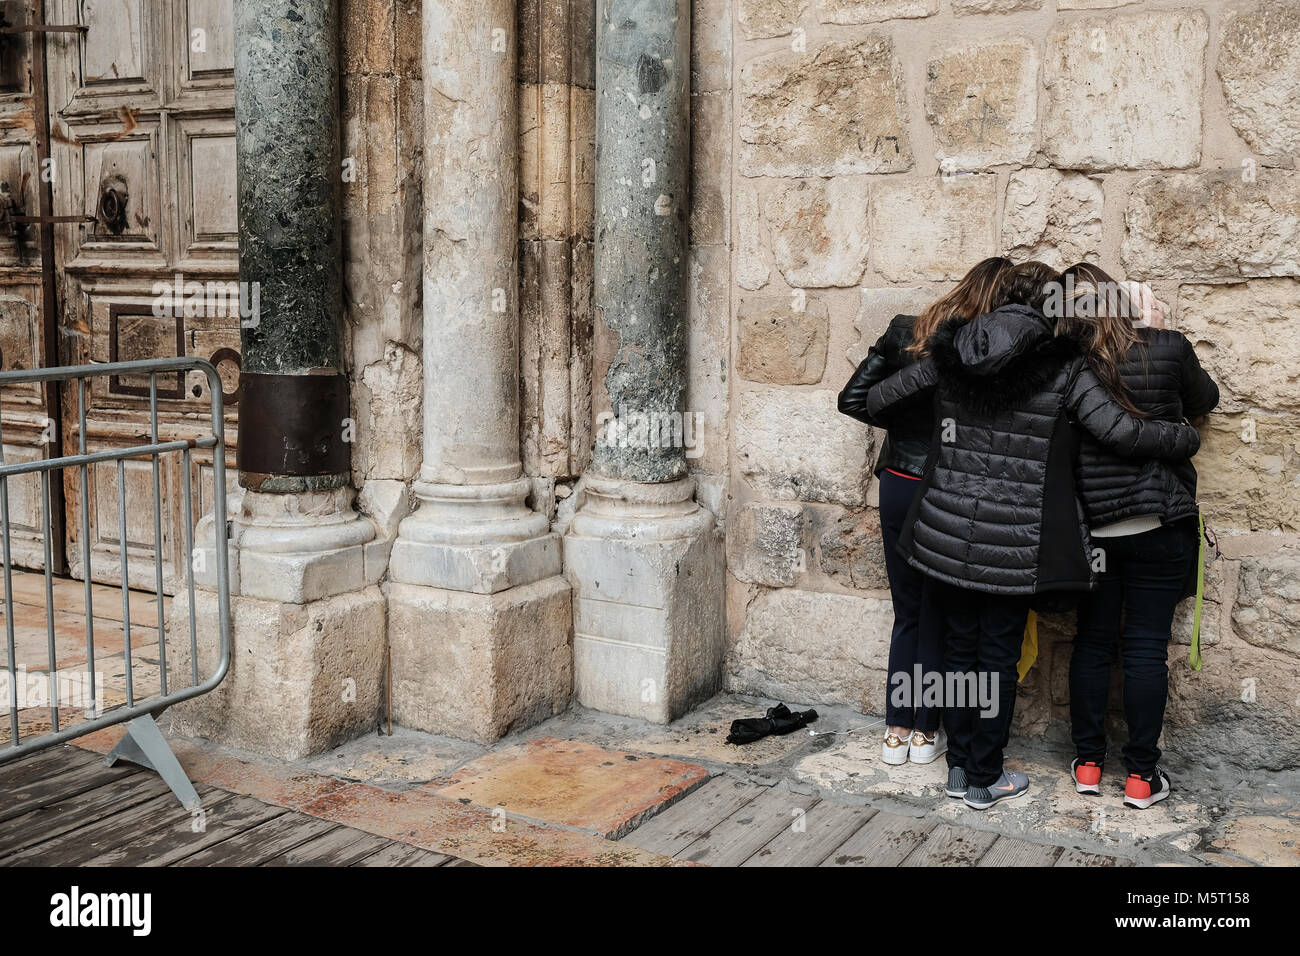 Jerusalem, Israel. 26th February, 2018. Worshippers pray outside the closed doors of the Church of the Holy Sepulchre Stock Photo